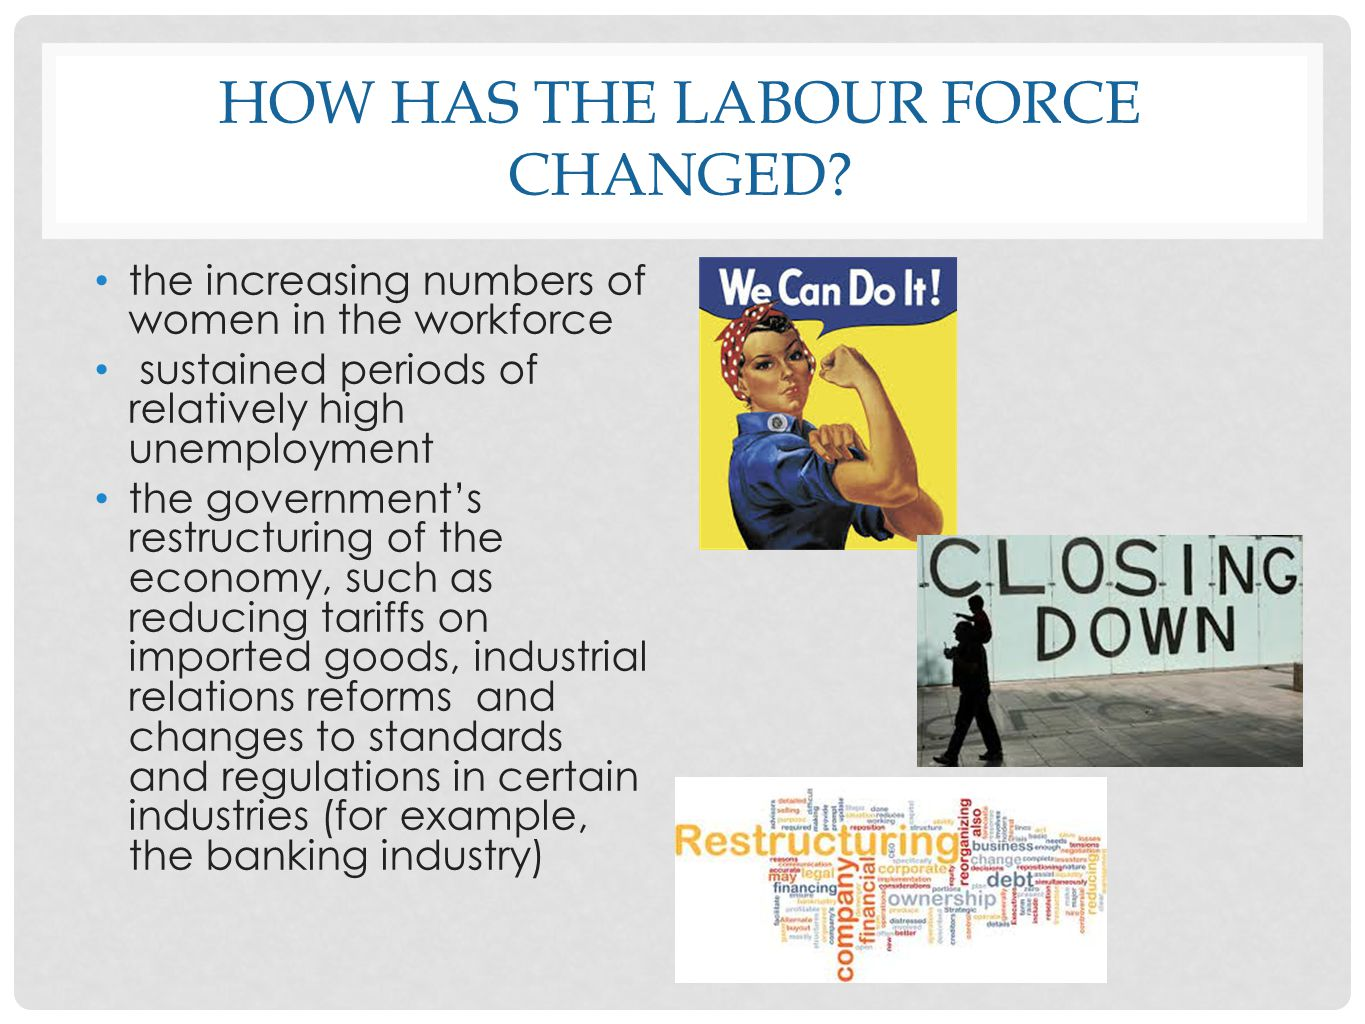 How has the labour force changed